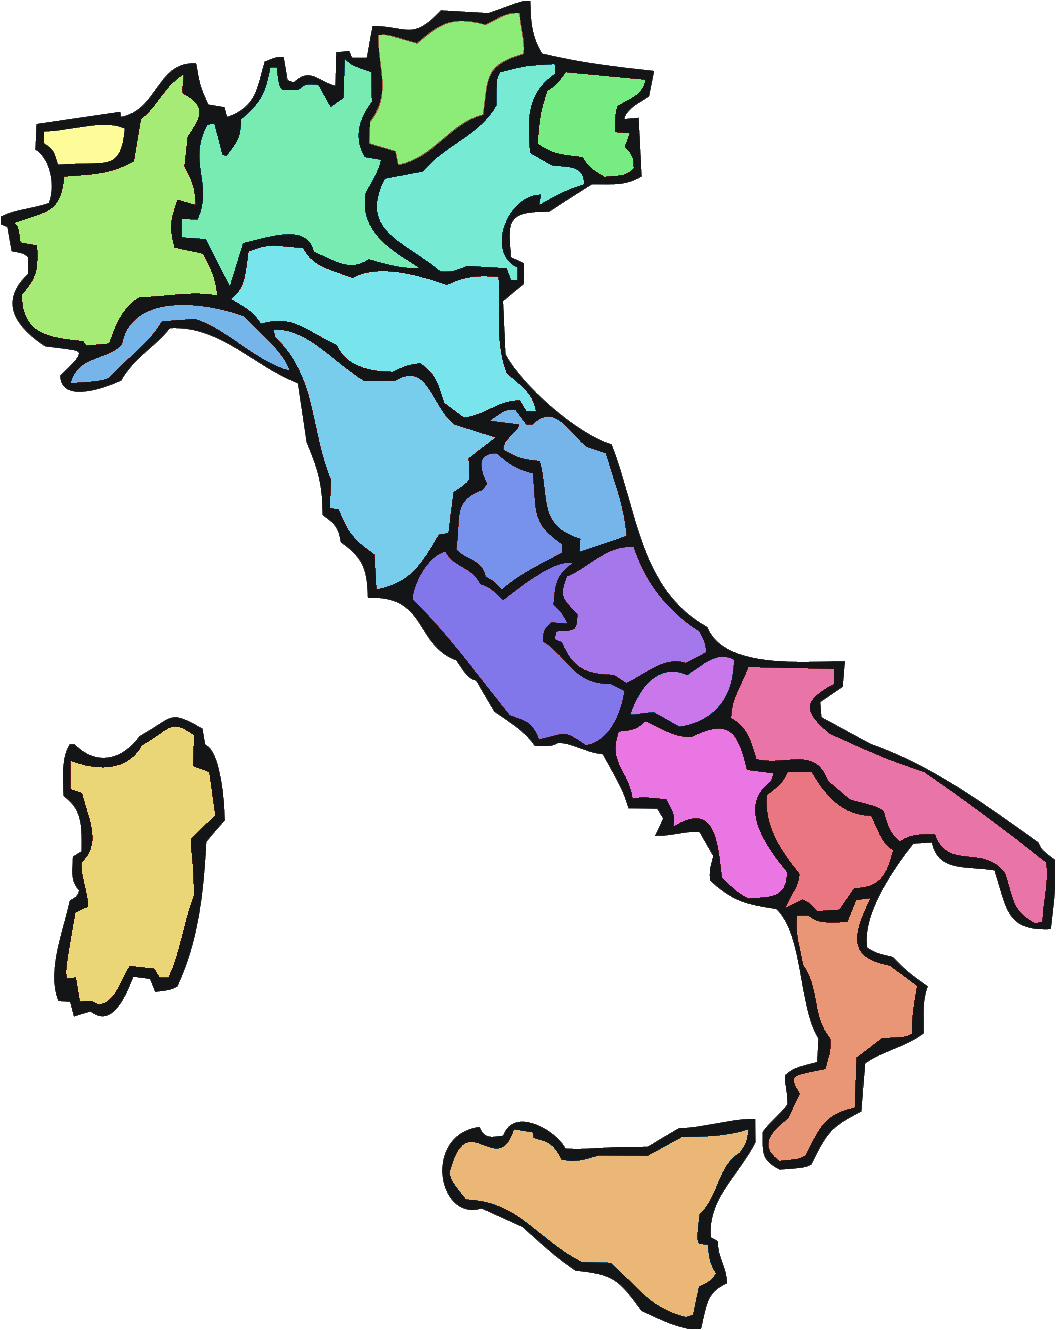 File:Italia regioni color.png - Wikimedia Commons